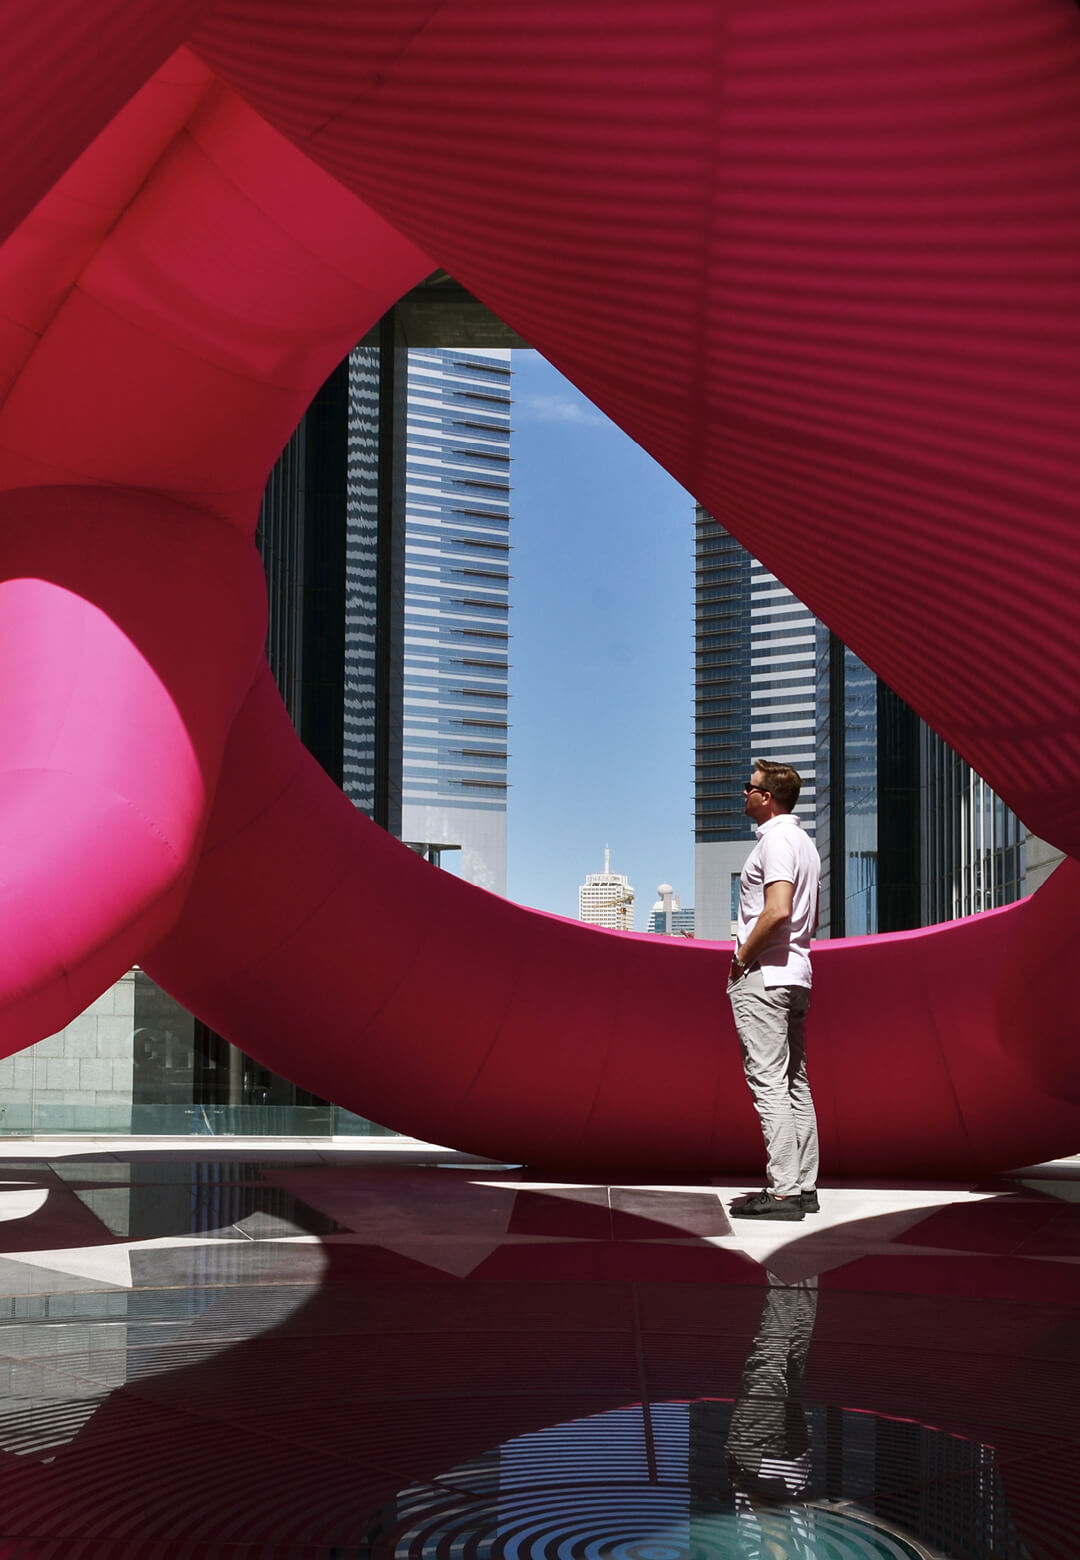 'Flamingo Ring' at Dubai International Financial Centre is an example of the way Cyril Lancelin uses popular imagery in his art | Flamingo Ring by Cyril Lancelin | STIRworld